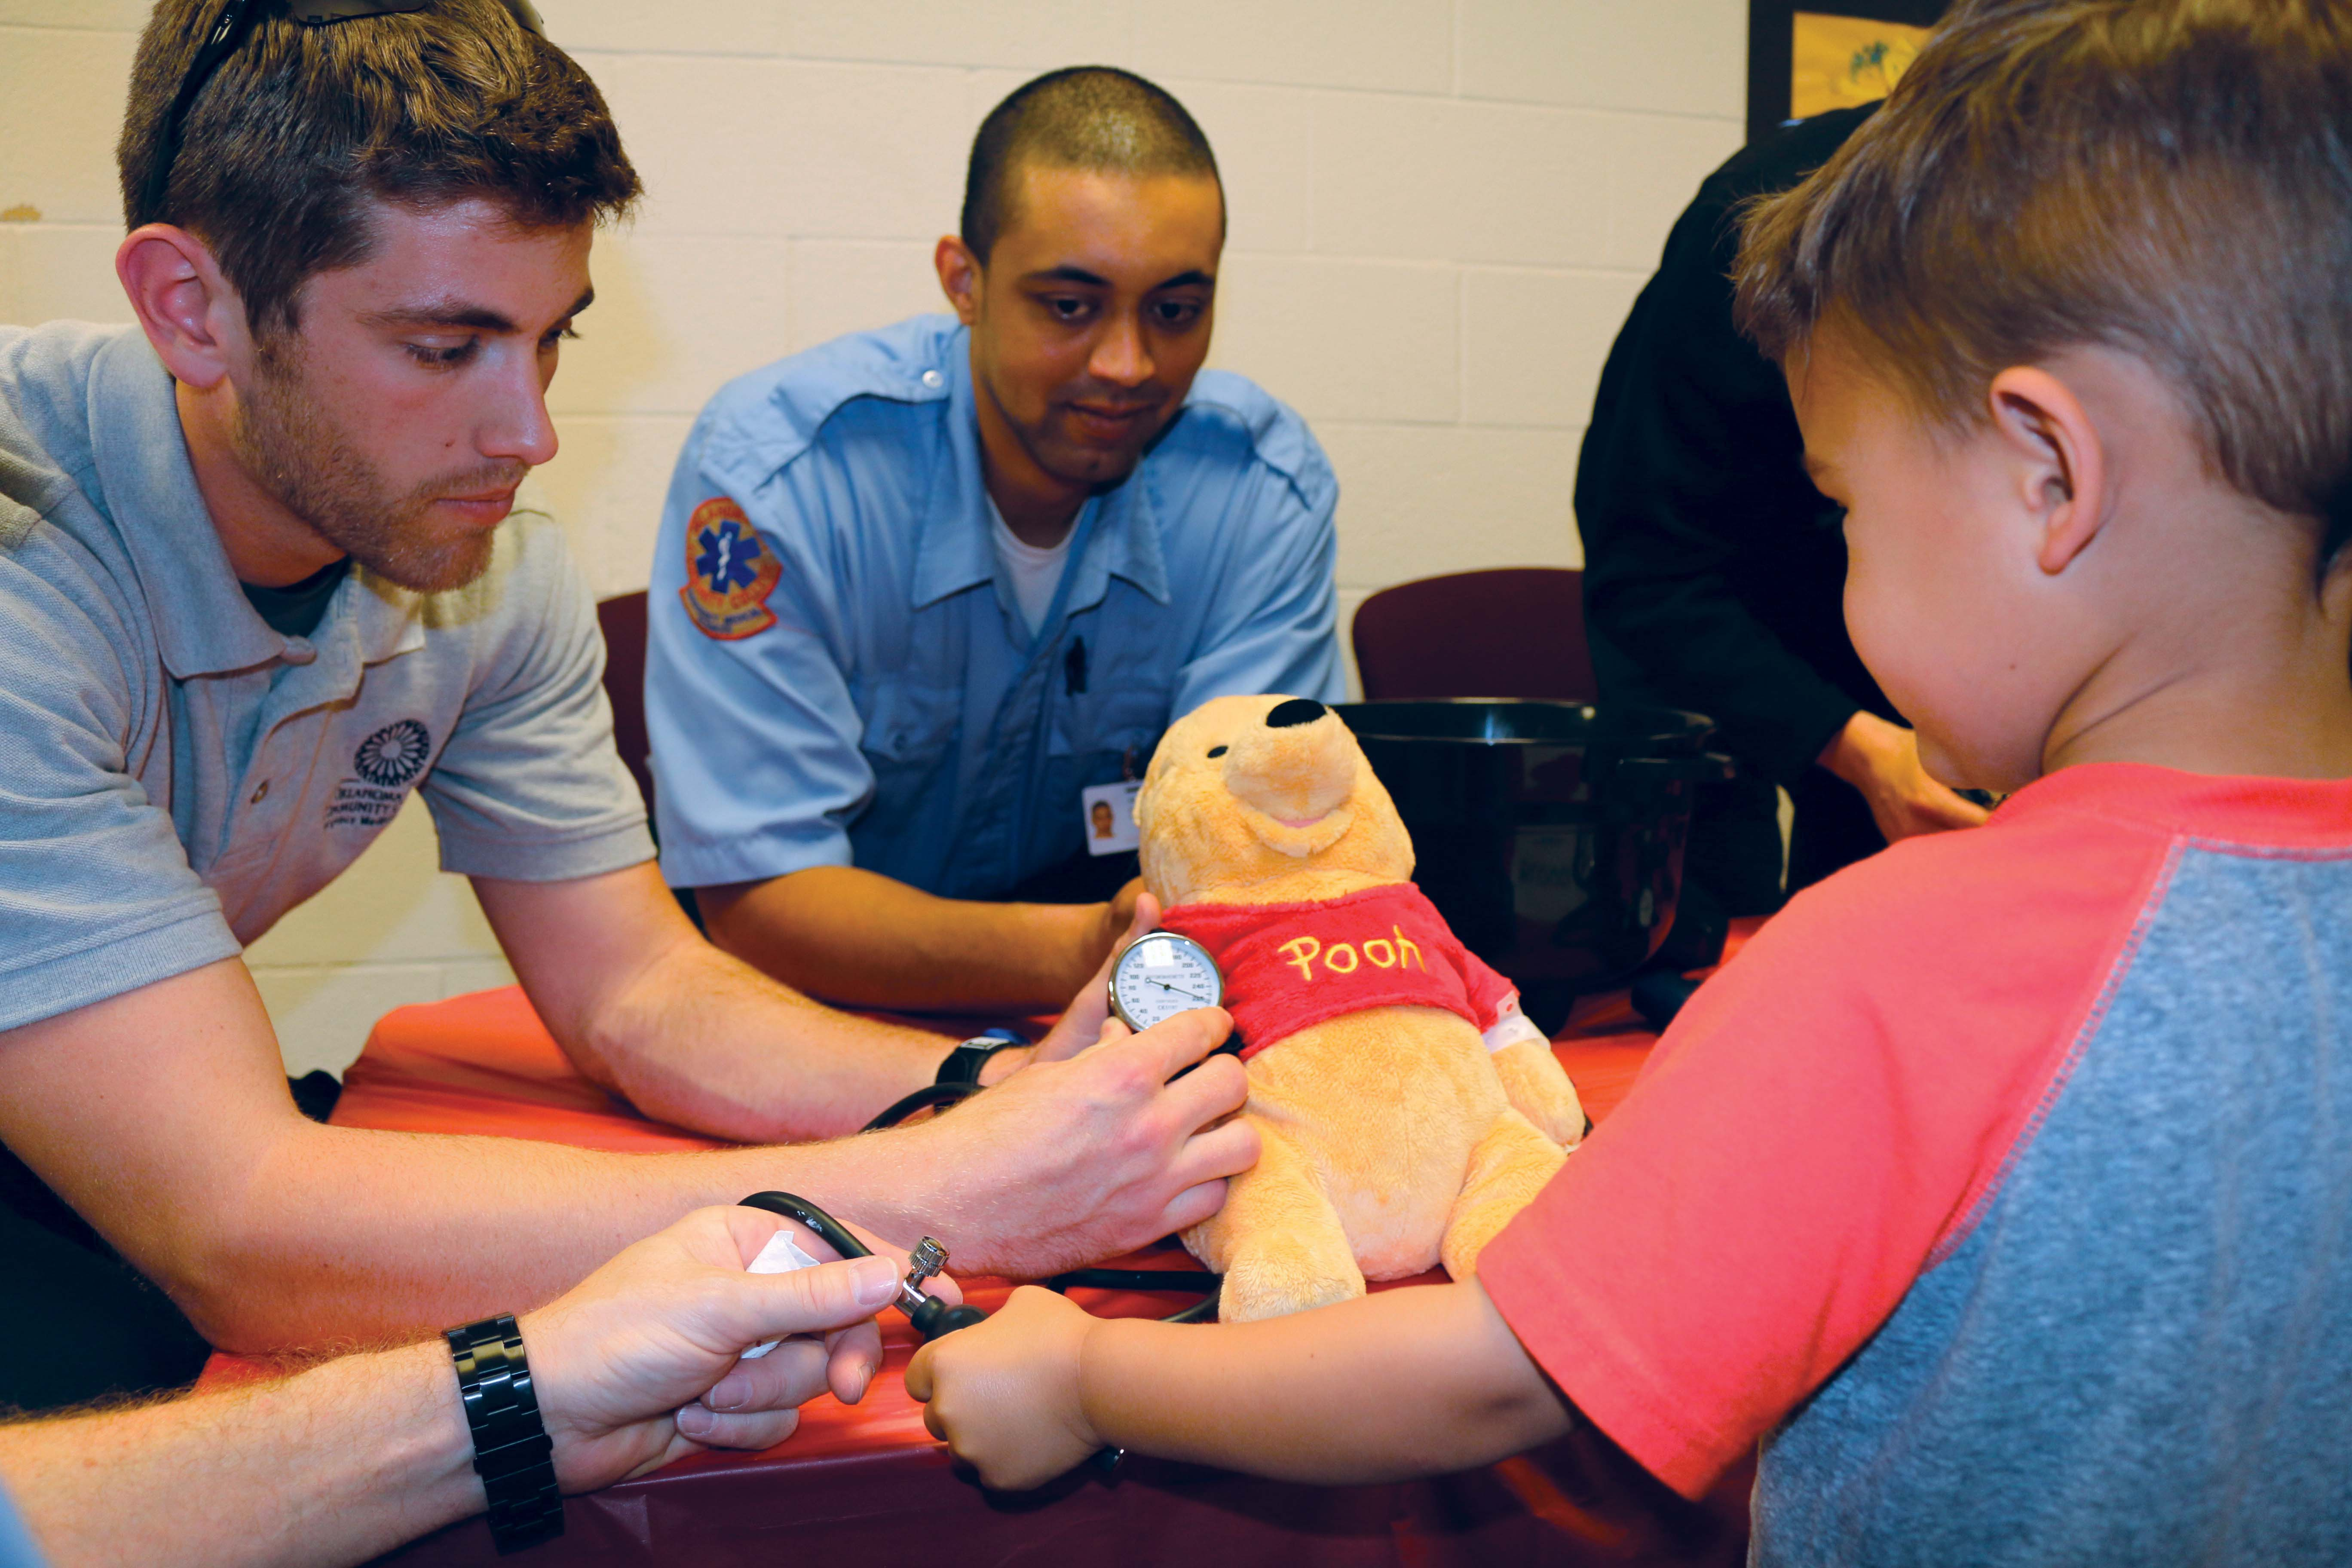 Kids learn teddy bear care from students